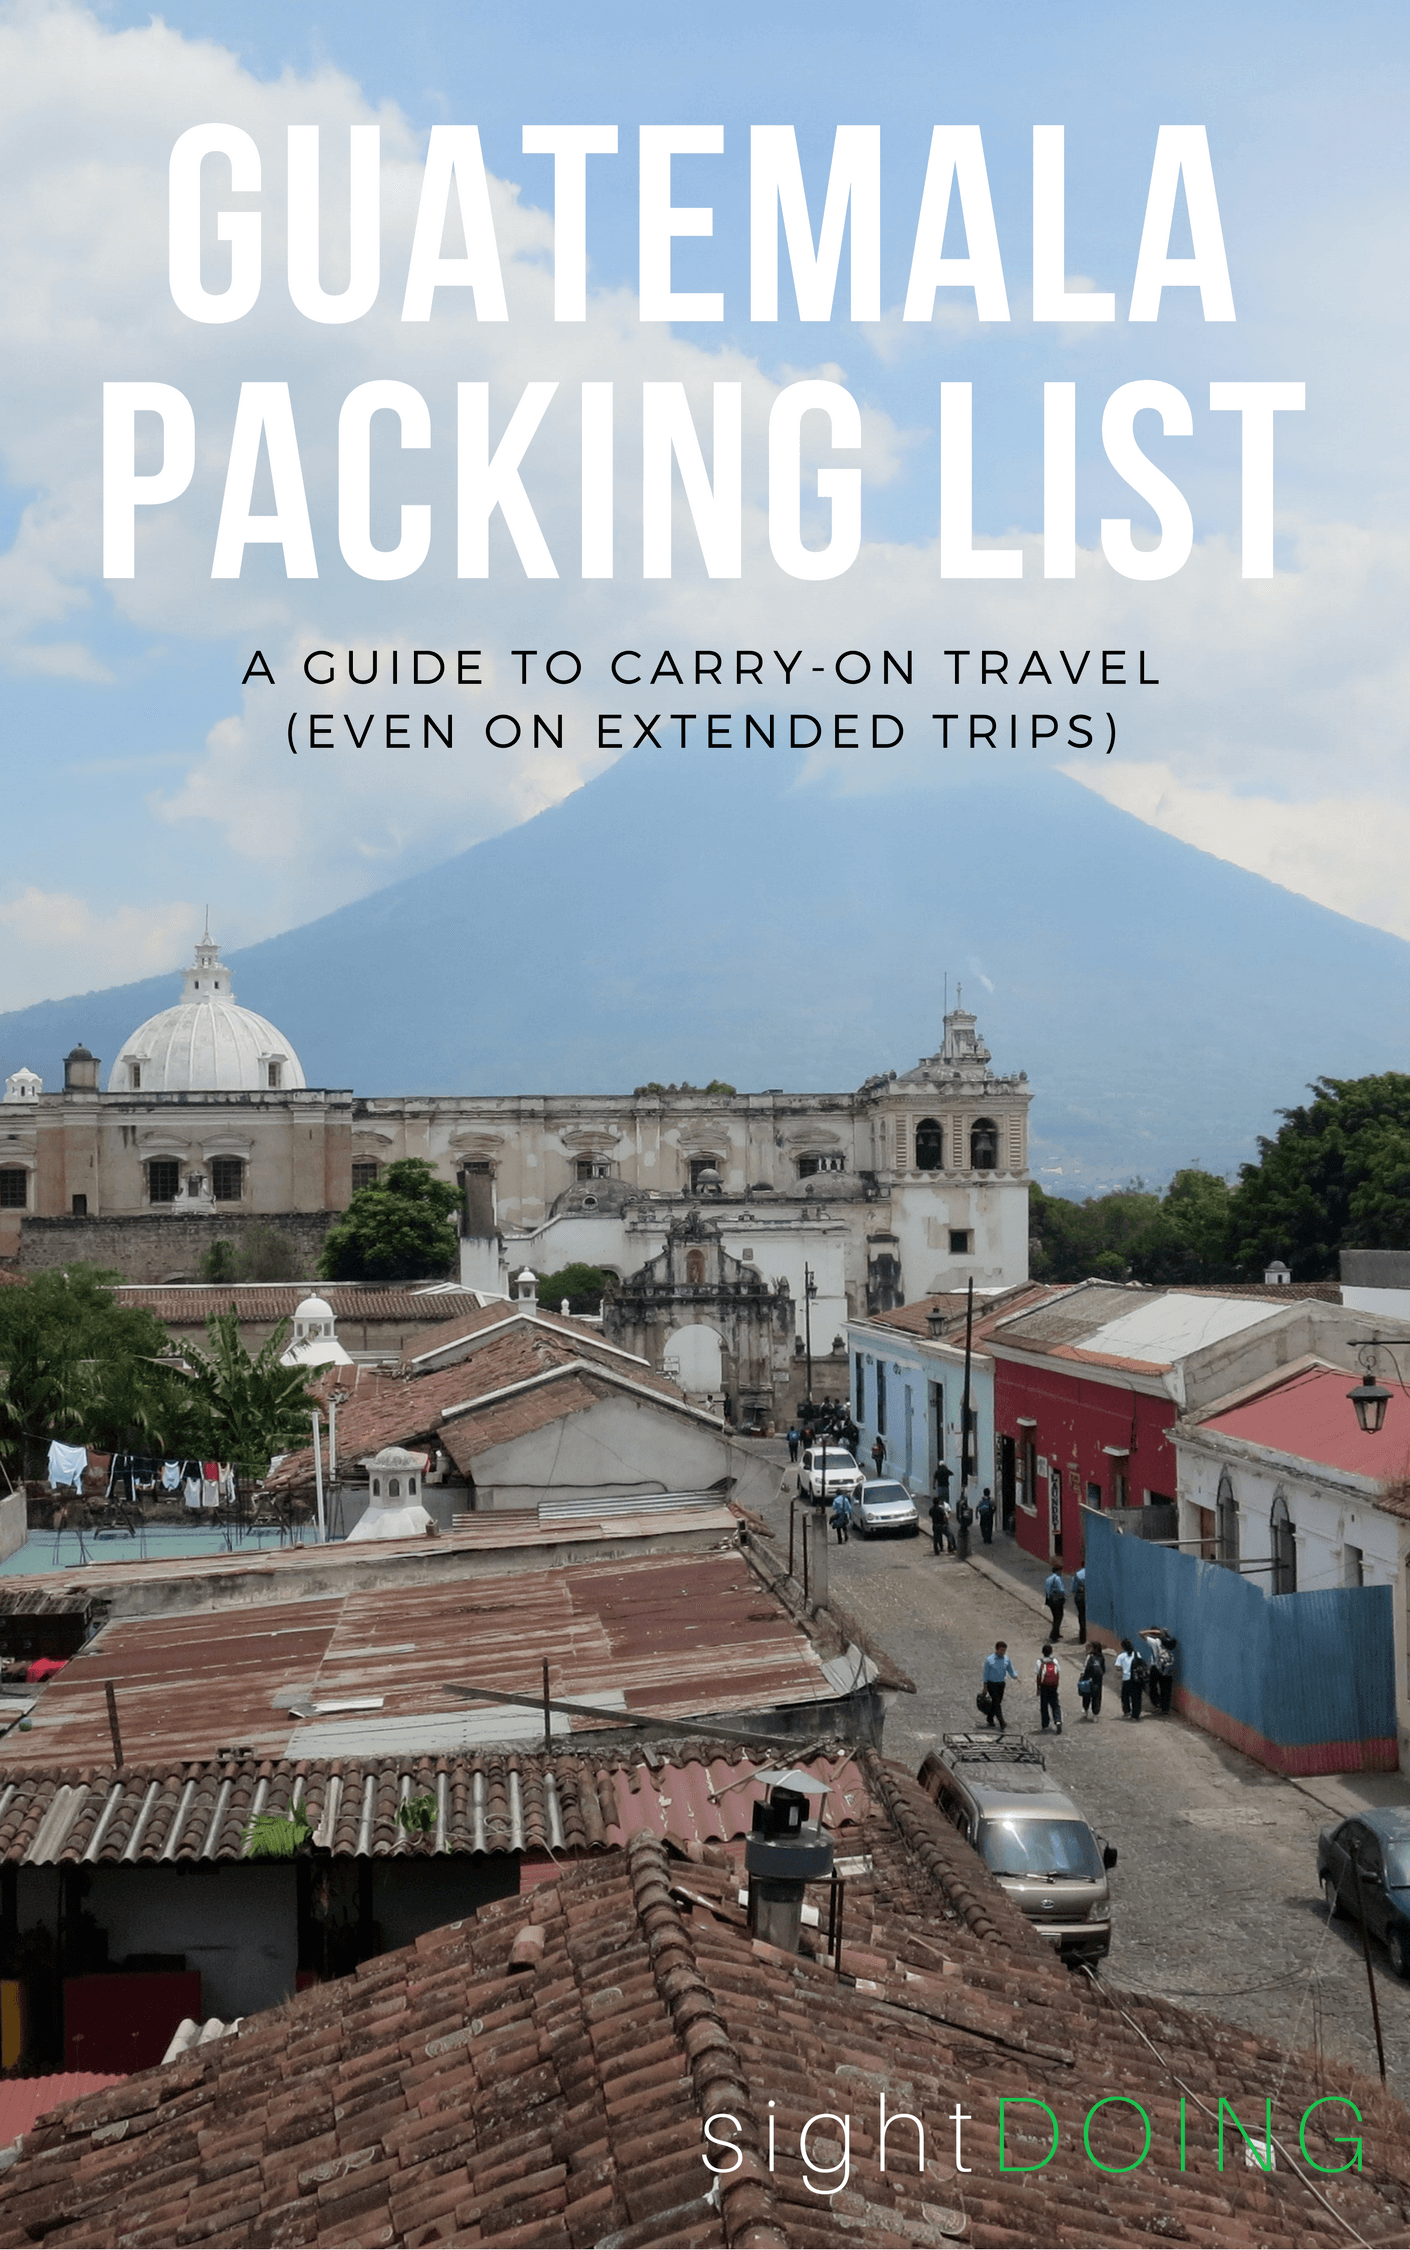 This Guatemala packing list shows how to travel carry-on only even on extended trips. The author traveled 7+ weeks through Central America with a backpack.